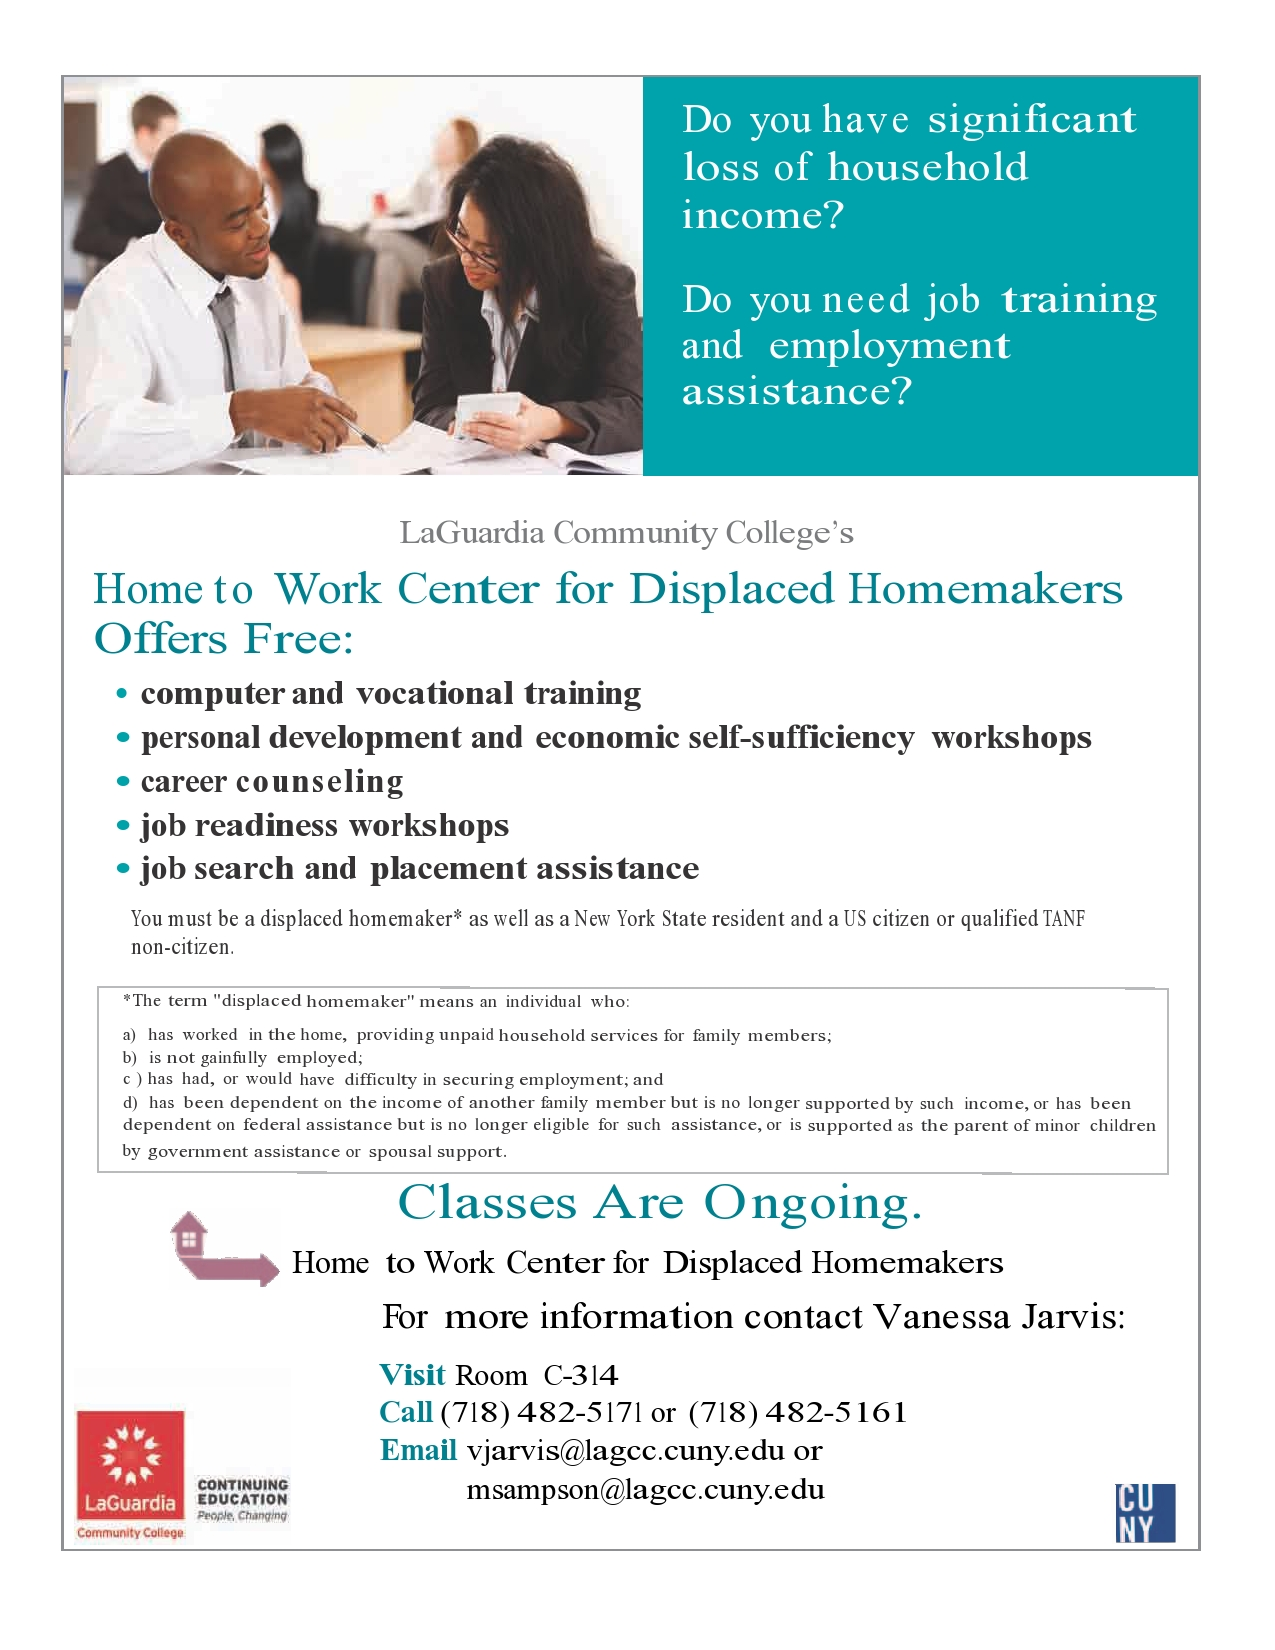 job training programs brooklyn community board 14 brooklyn community college offers computer vocational training job readiness workshops job search placement assistance career counseling and classes on